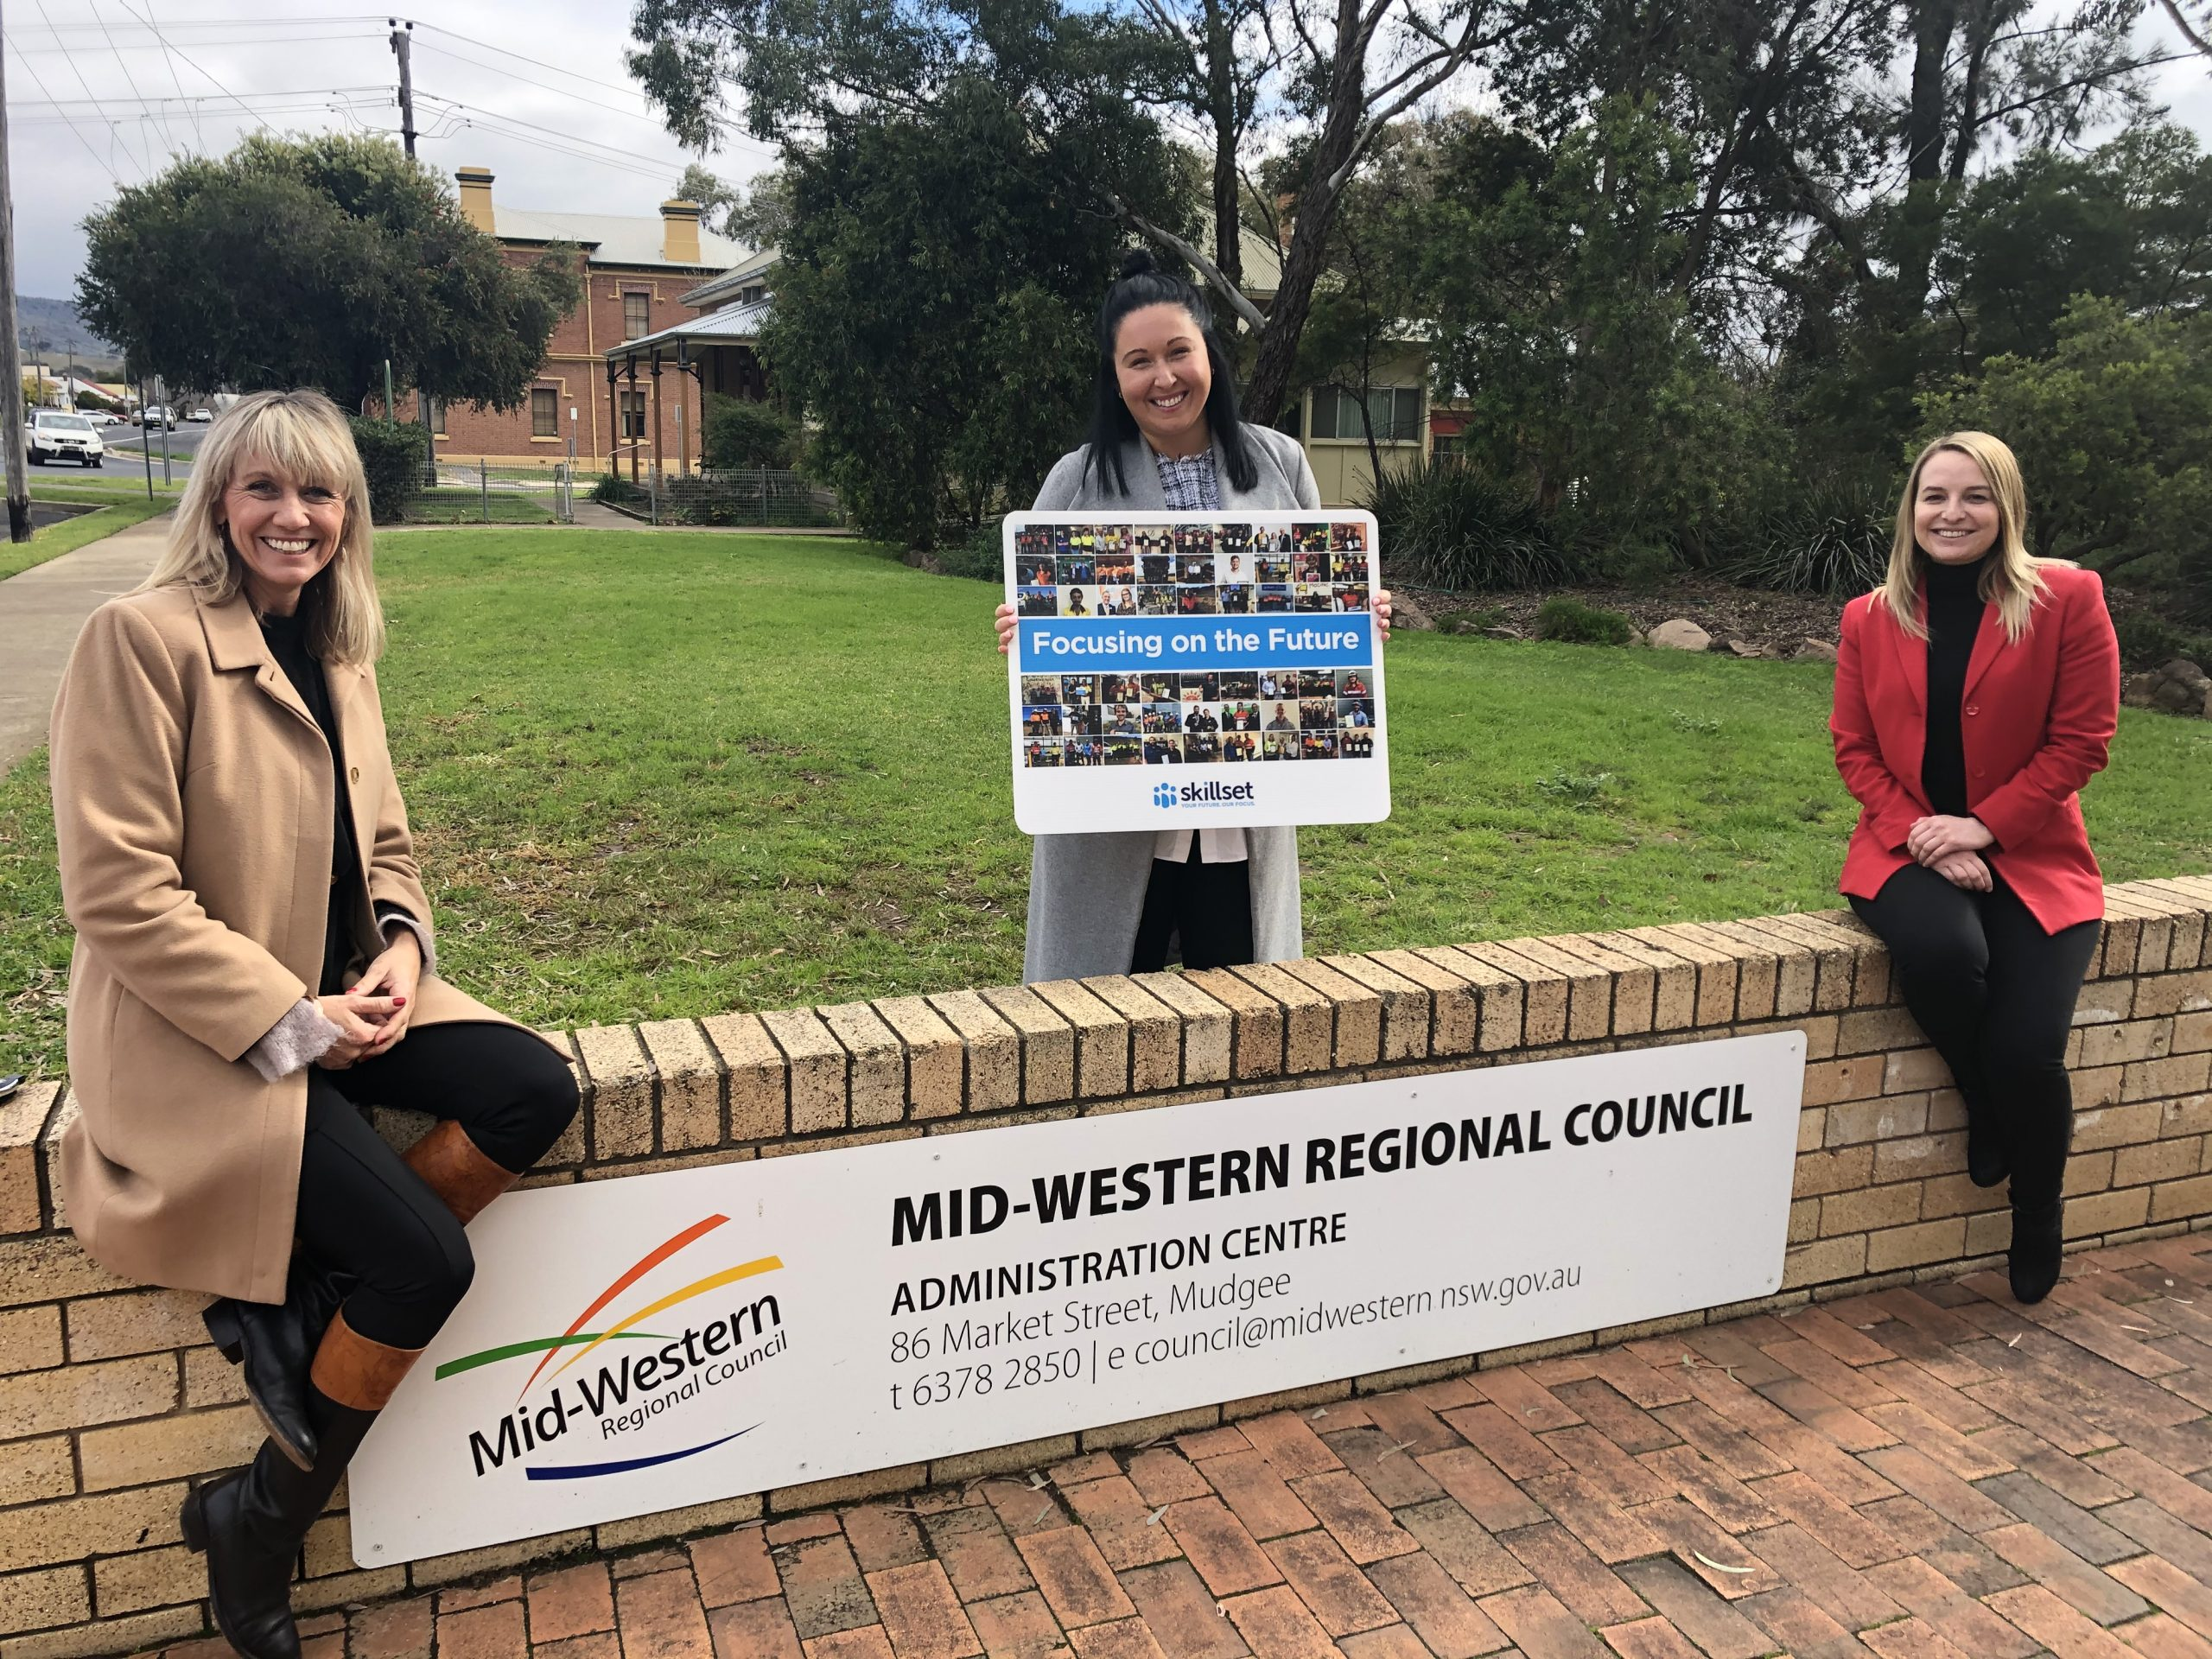 Focusing on the Future: Central West and Orana NSW is set to grow!